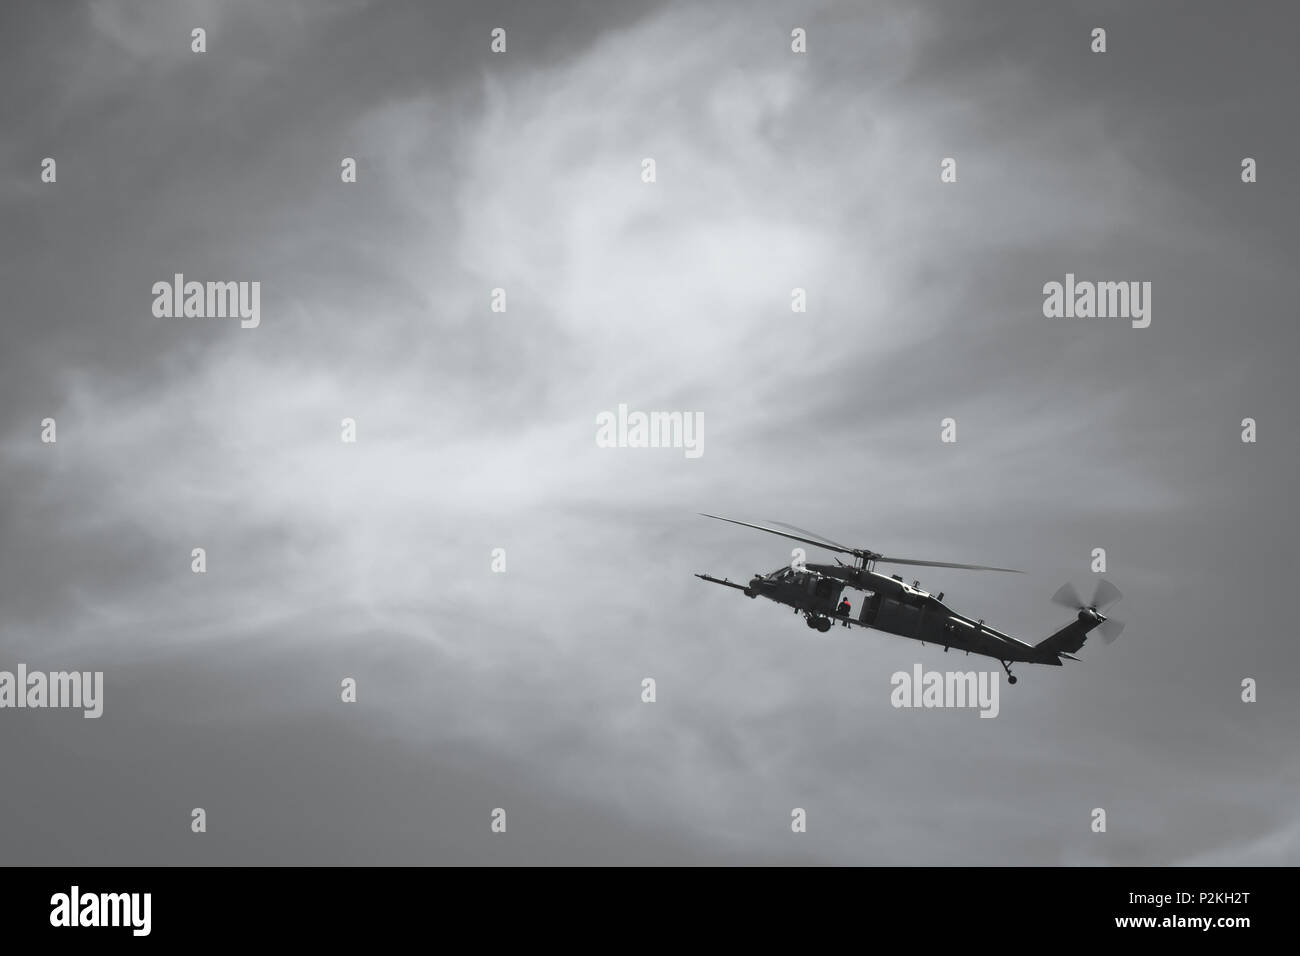 An HH-60 Pavehawk helicopter flies over Cocoa Beach, Florida during PJ Rodeo 2016 on Sept. 21, 2016. The flight was part of a pararescue (PJ) competition that challenged Airmen from different Air Force search and rescue units around the world. PJ Rodeo 2016 brought together past and present PJs to showcase their unique mission and build camaraderie.  (U.S. Air Force illustration/Tech. Sgt. Brandon Shapiro) Stock Photo